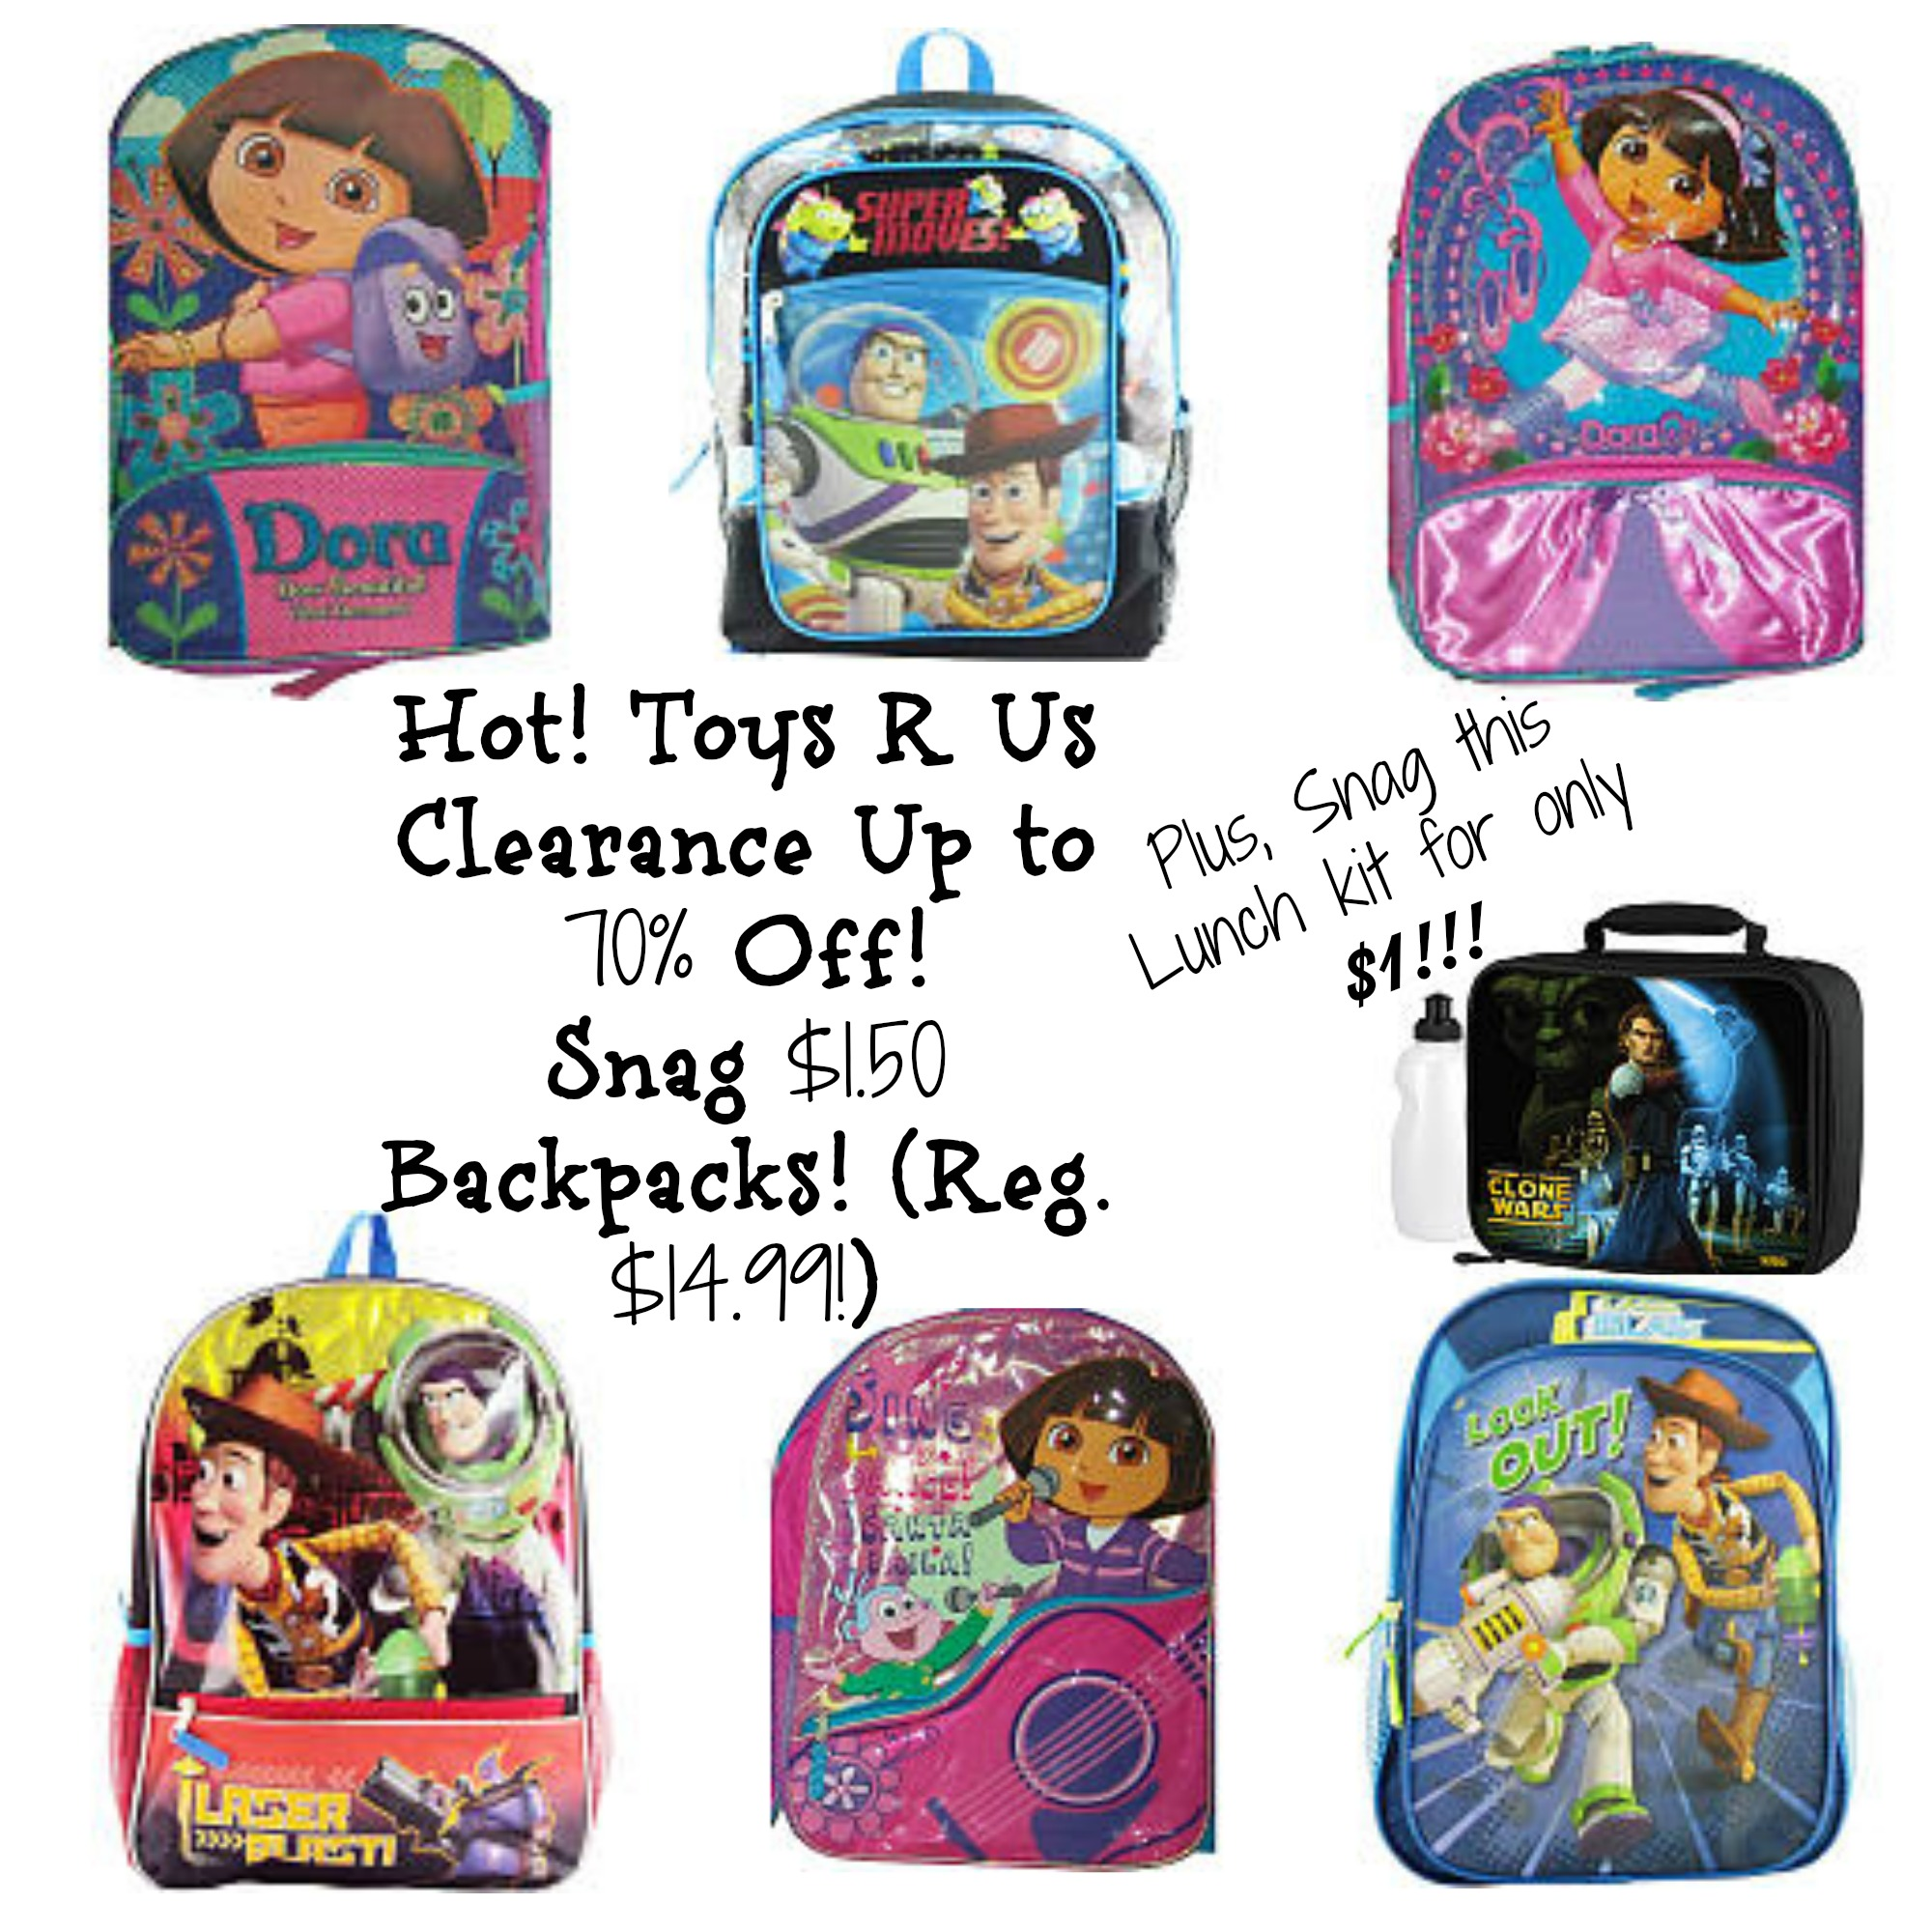 backpacks Toys R Us 70% Off Clearance Prices are HOT,HOT ,HOT! Backpacks for only $1.50/ Lunch Kit for $1!!